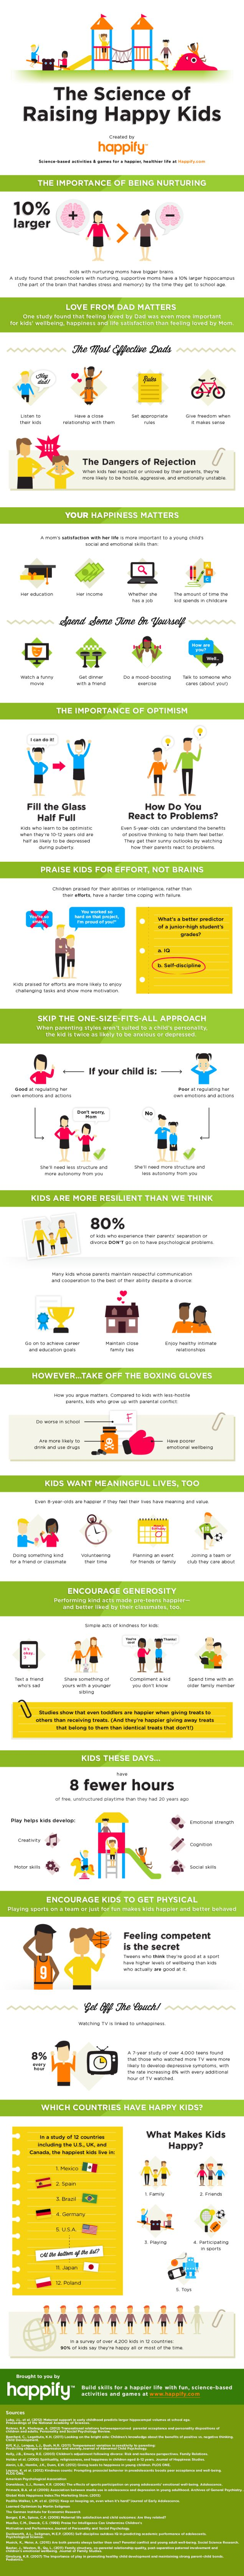 The science of raising happy kids #infographic #parenting #drrobyn